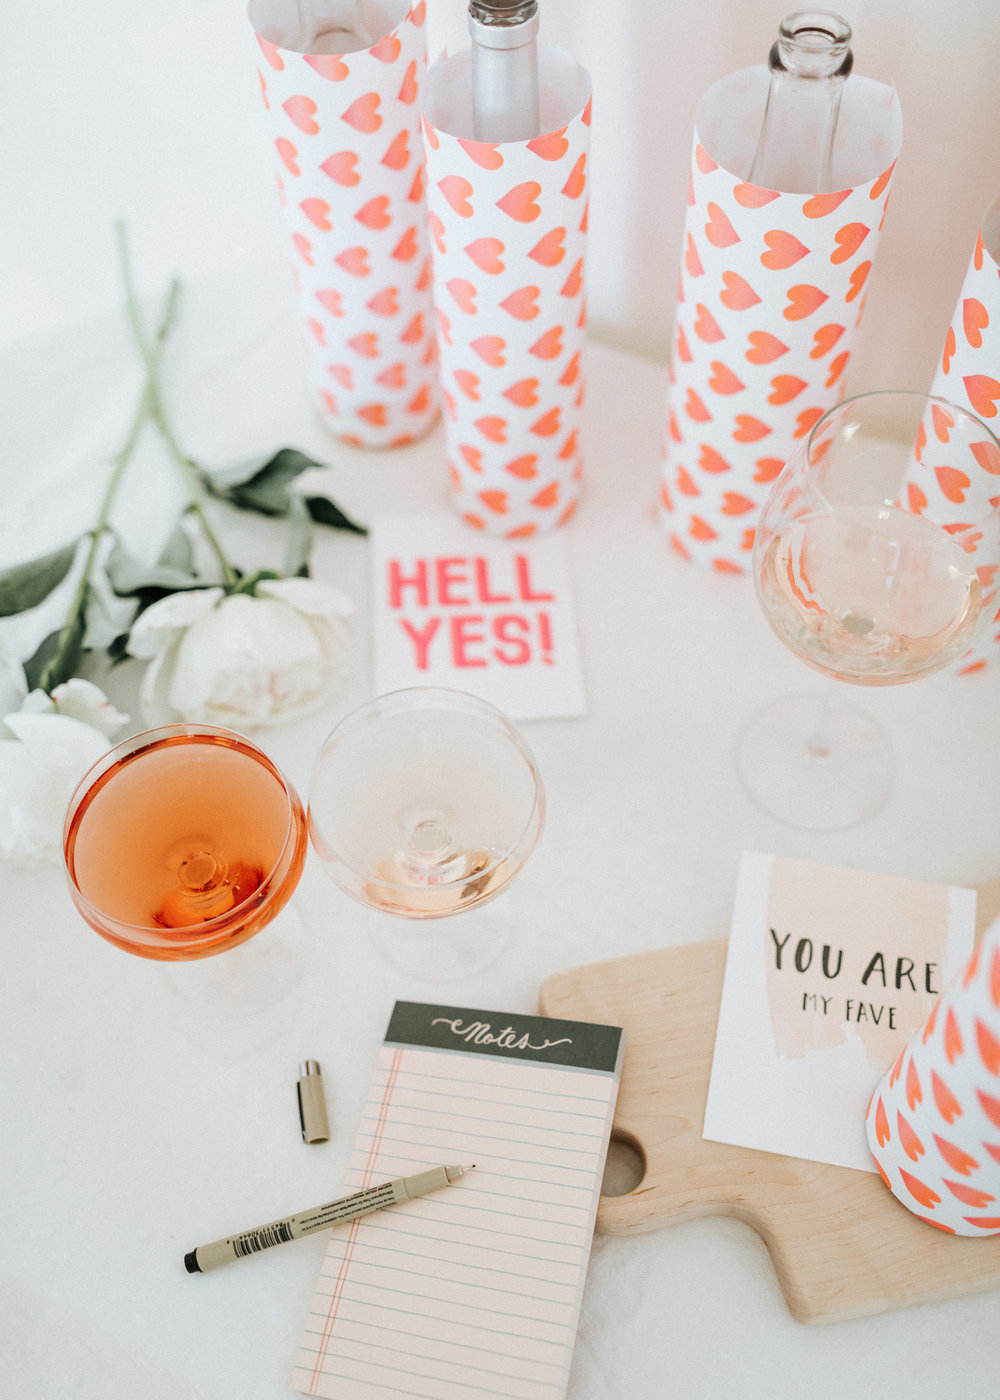 Rosé Tasting Party Ideas | A fun collaboration with Le Roux Kitchen ...